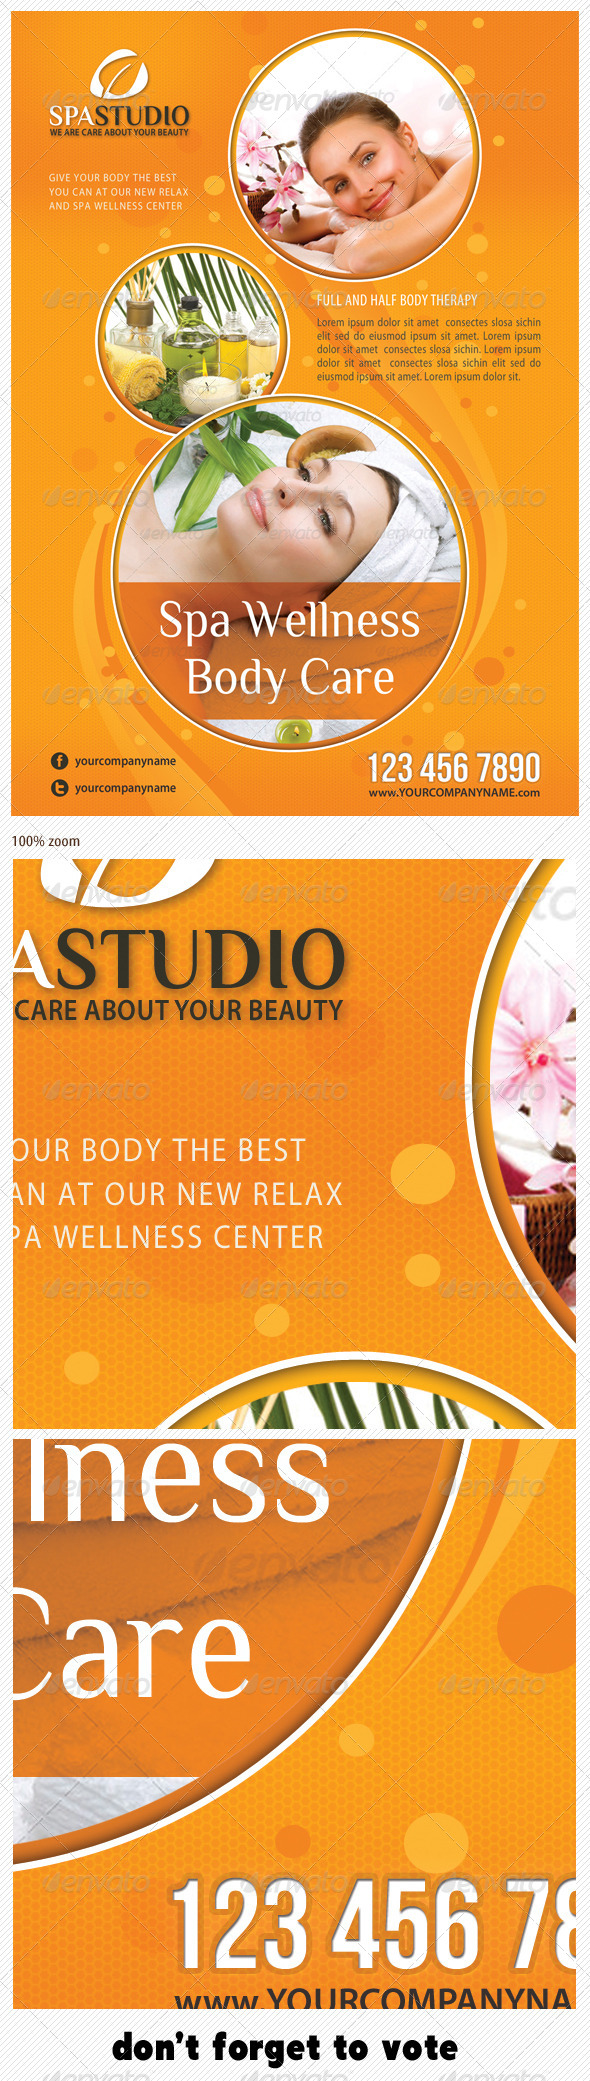 Spa Studio Flyer 15 - Corporate Flyers